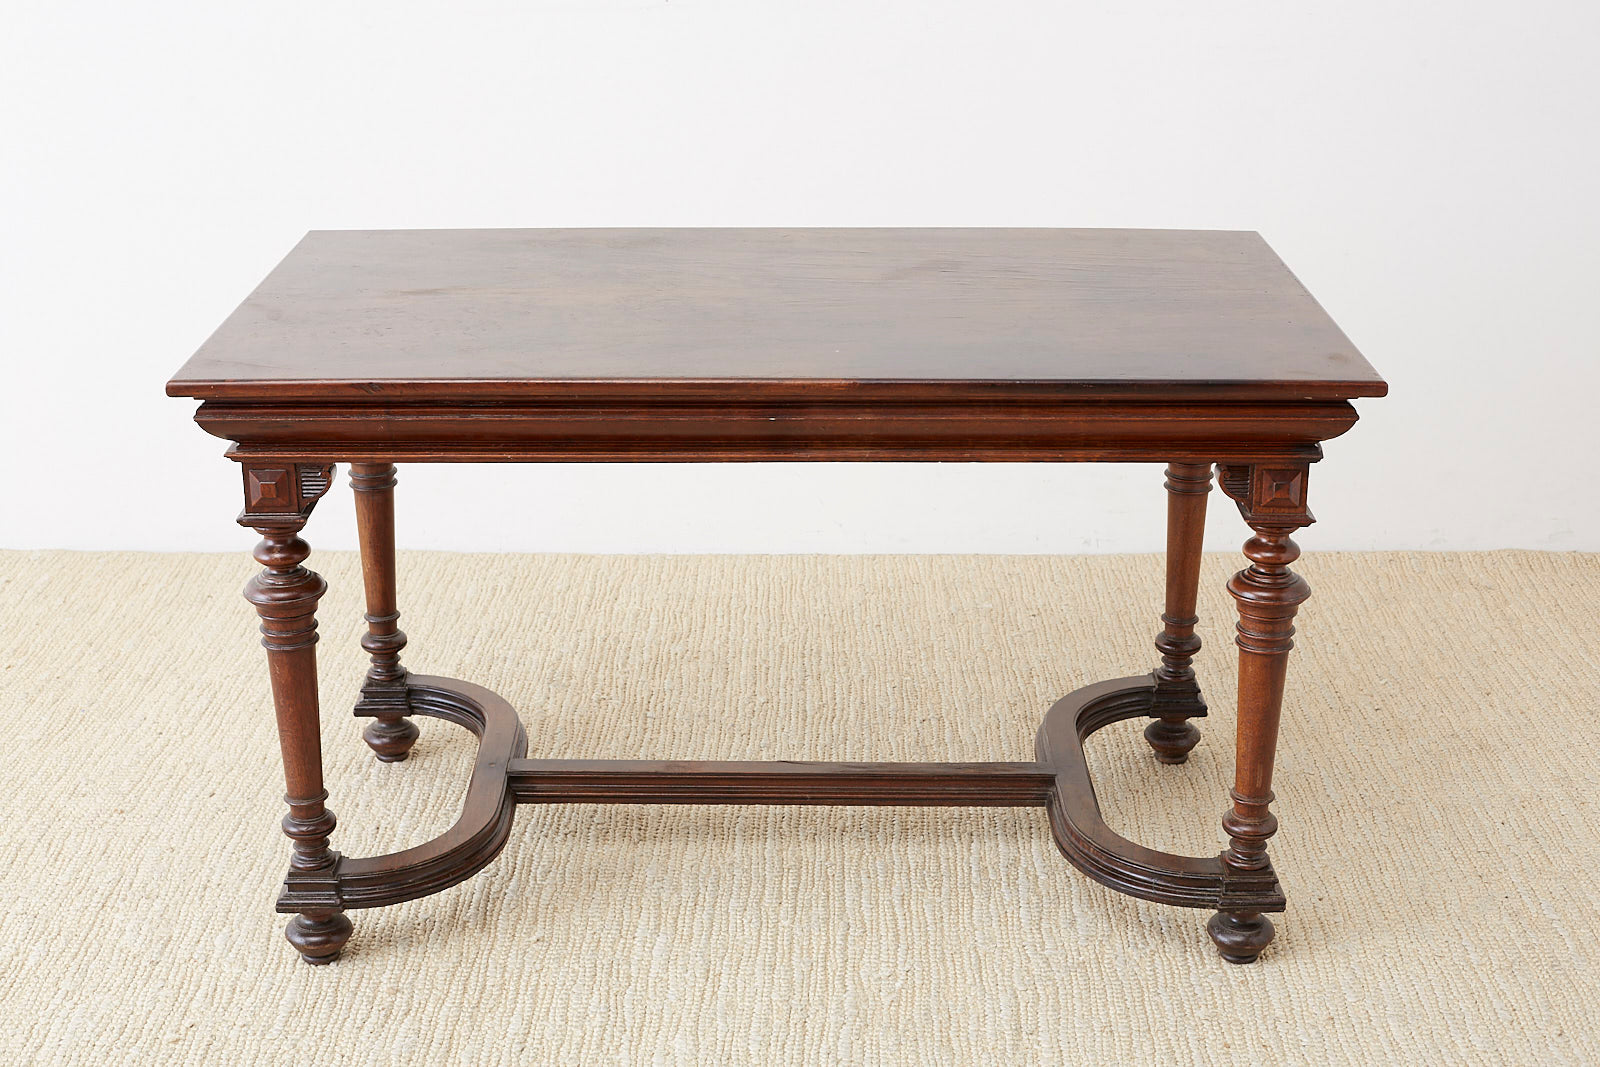 19th Century French Napoleon III Library or Writing Table